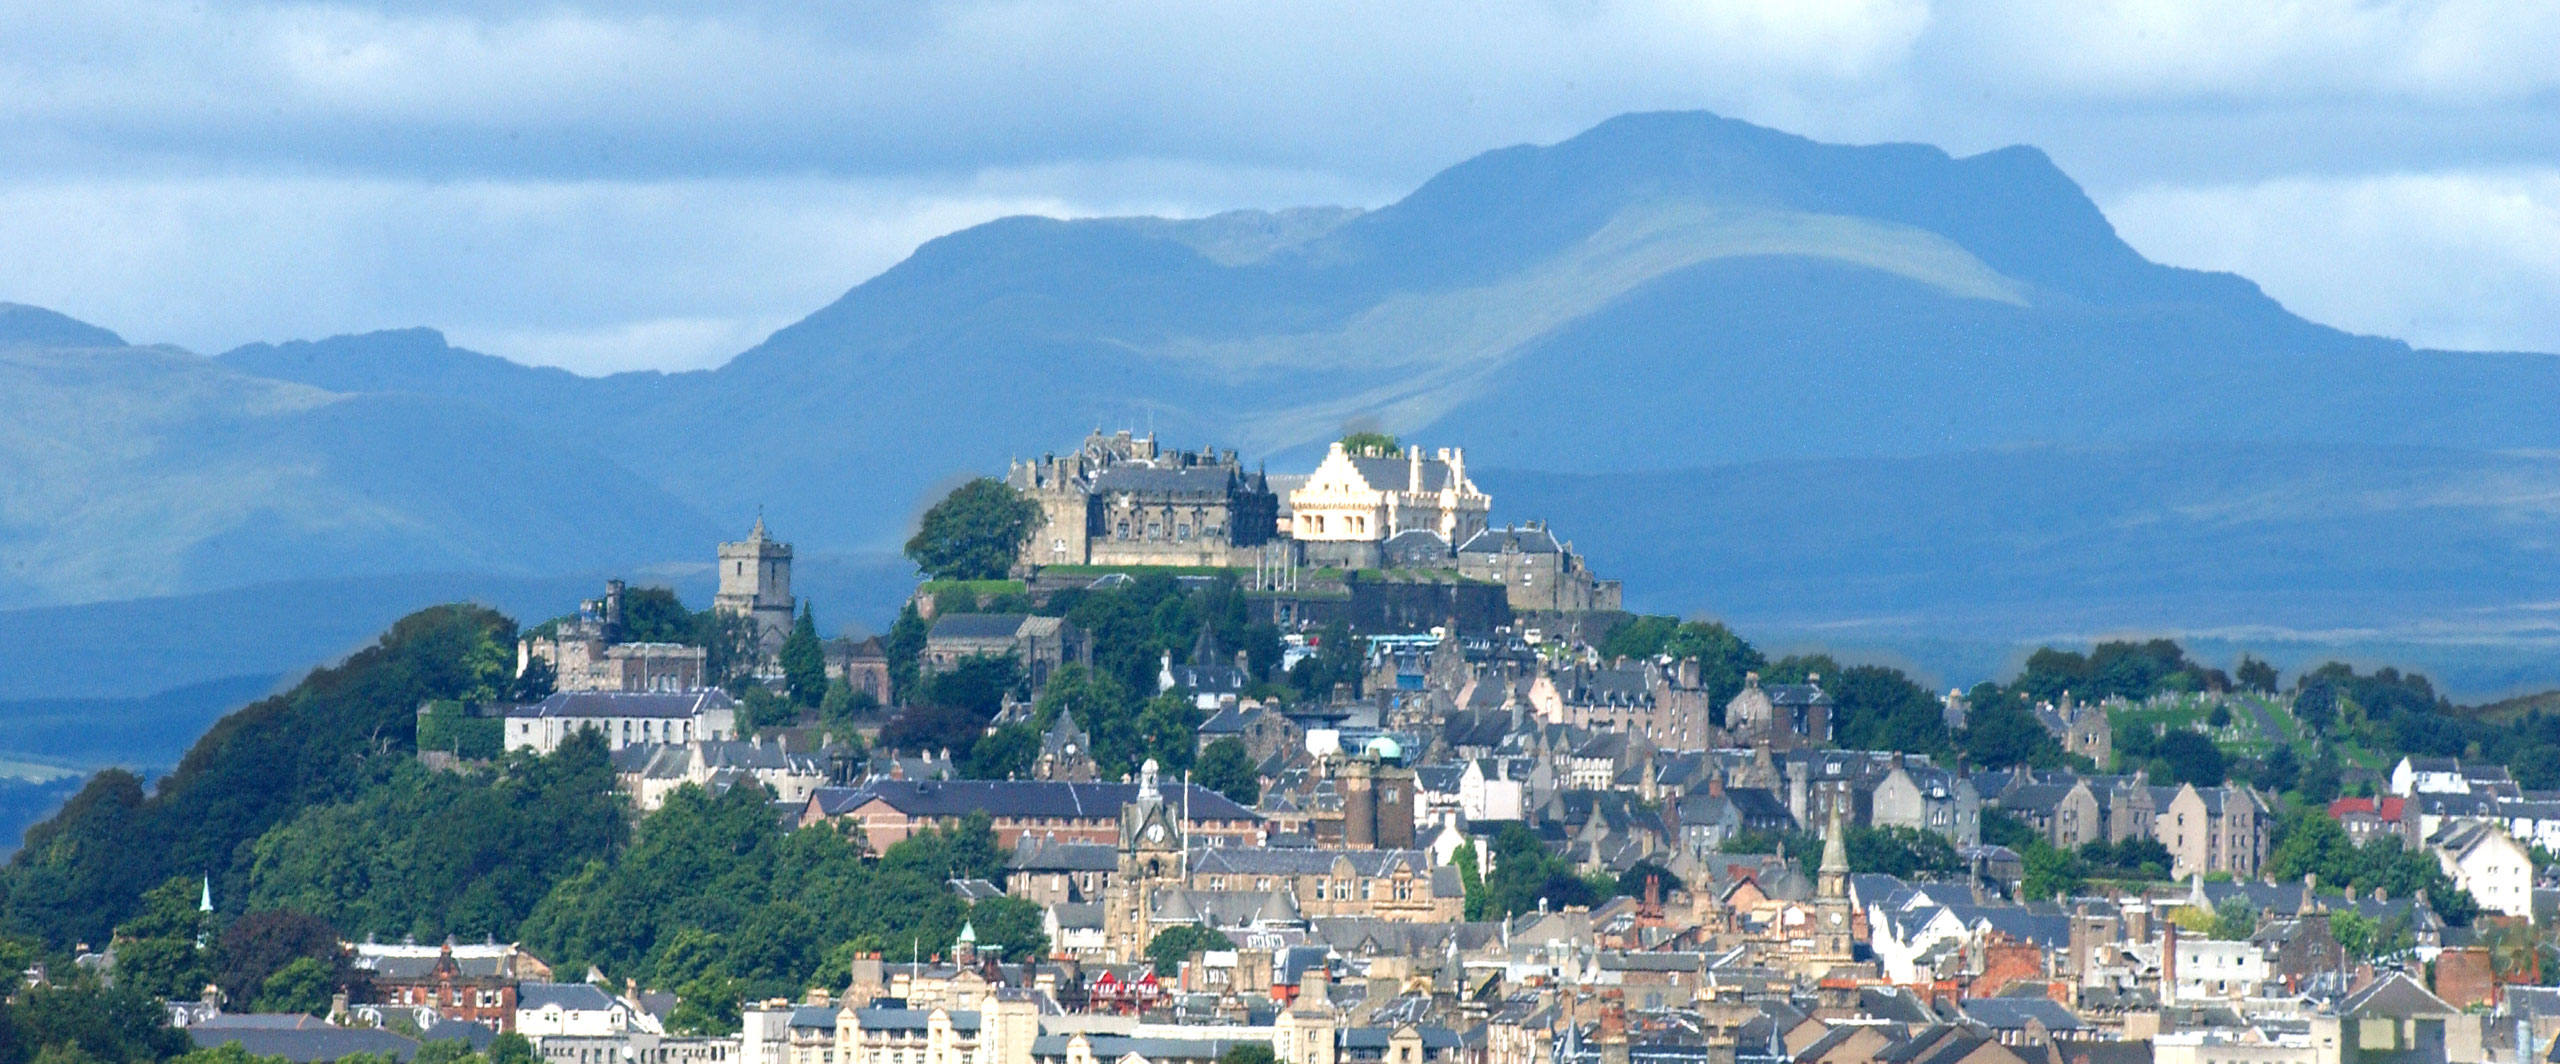 Stirling castle - Attribution: Stirling Council  Licence: CC 2.0 https://creativecommons.org/licenses/by/2.0/deed.en Source:  https://commons.wikimedia.org/wiki/File:Stirling_Castle_(5455709703).jpg